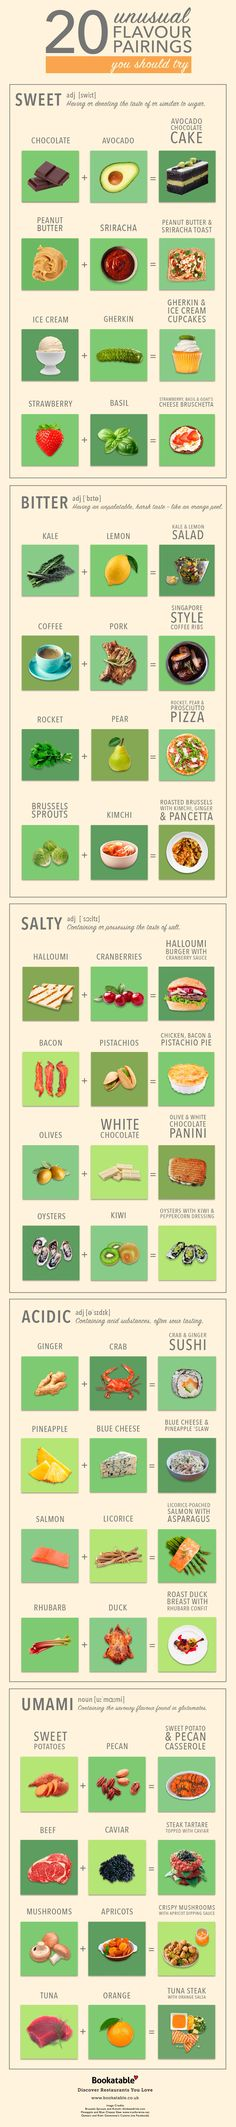 20 Unusual Flavour Pairings You Must Try! #Infographic #Food